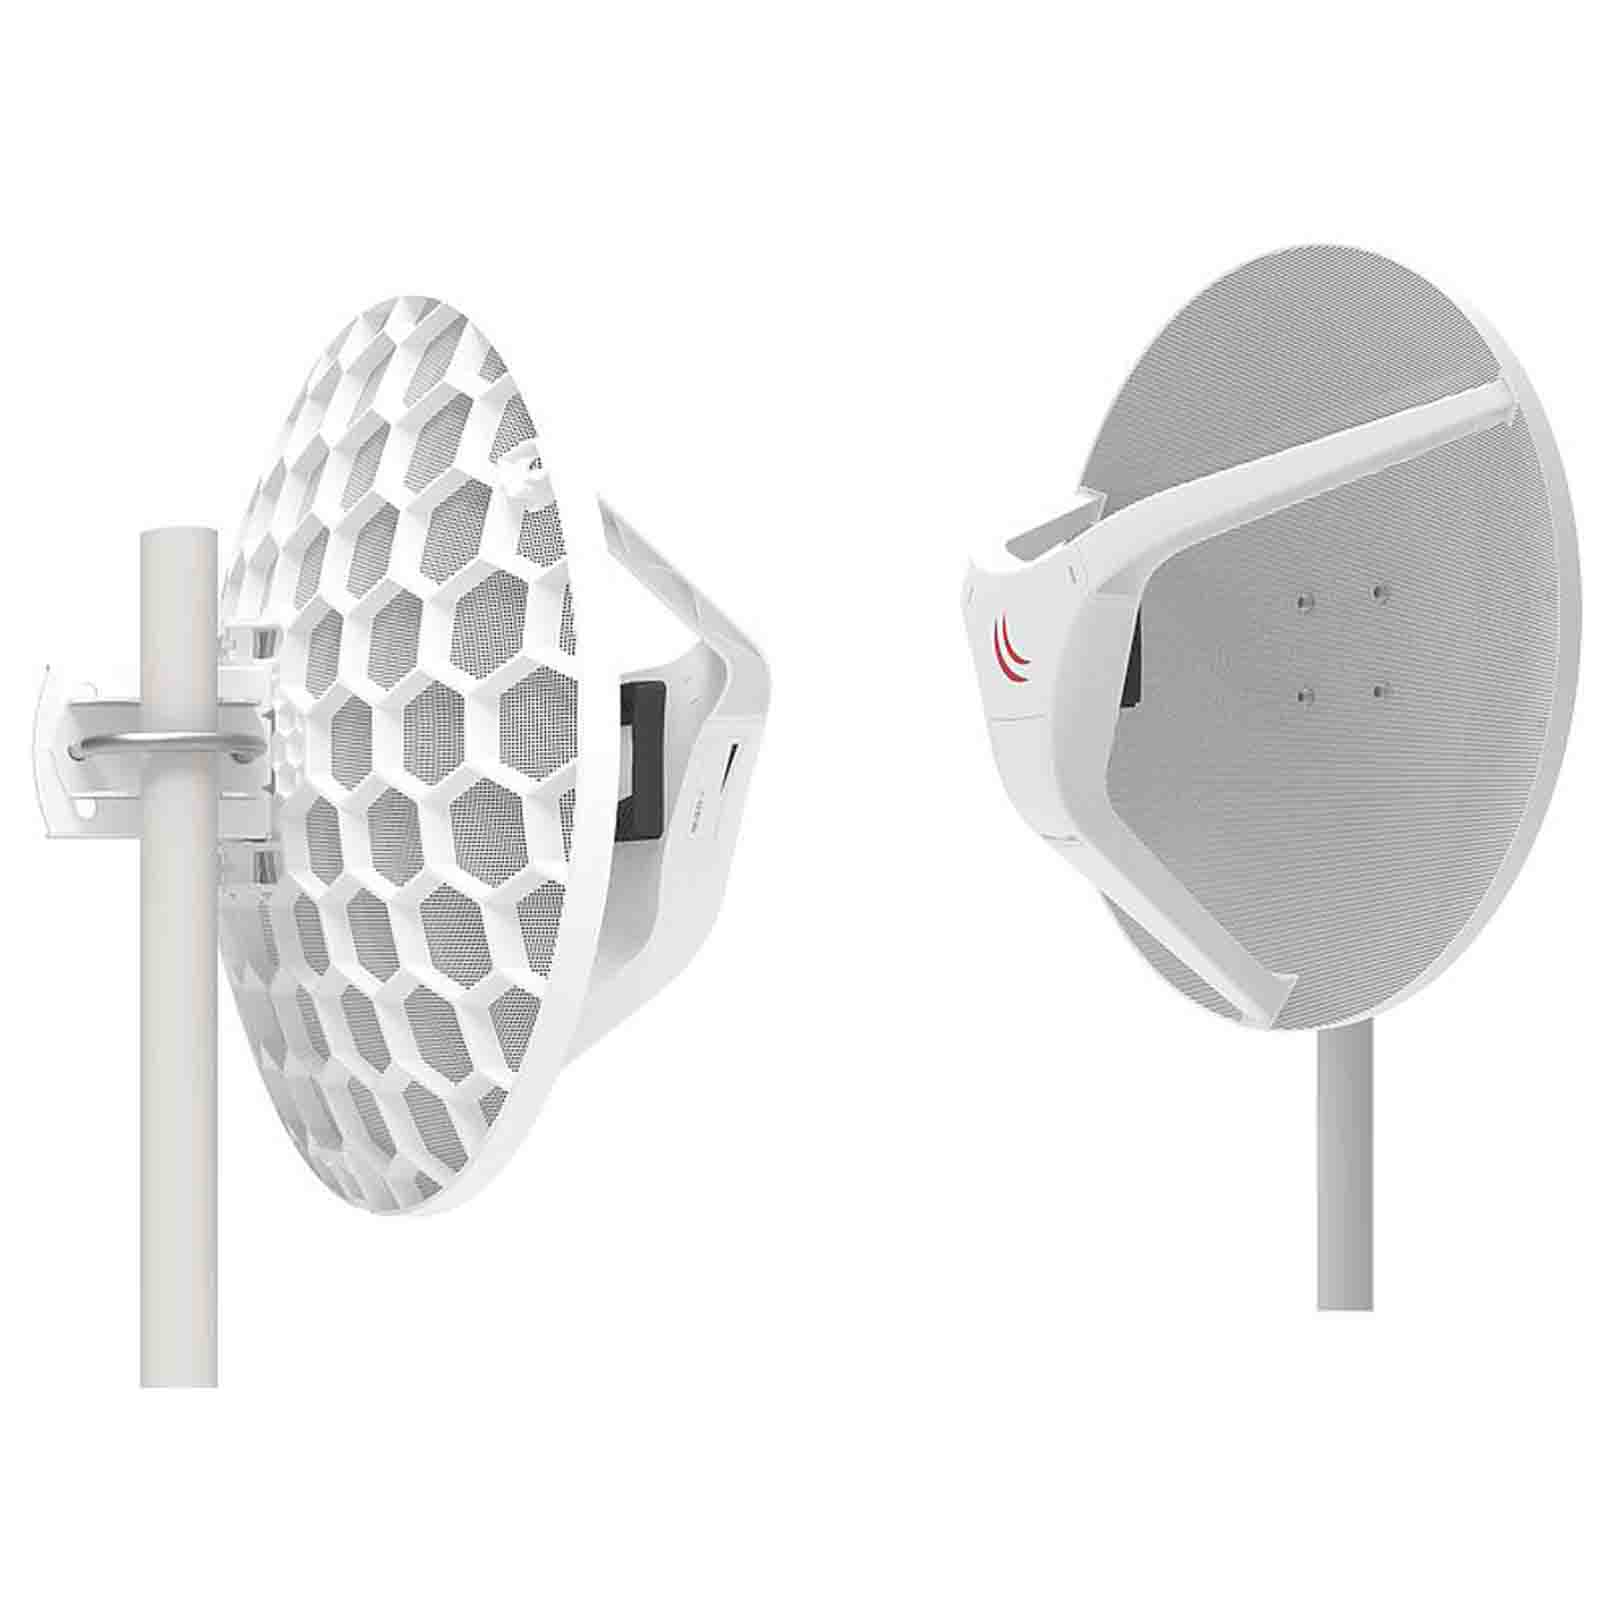 RouterBoard Wireless Wire Dish (RBLHGG-60adkit)